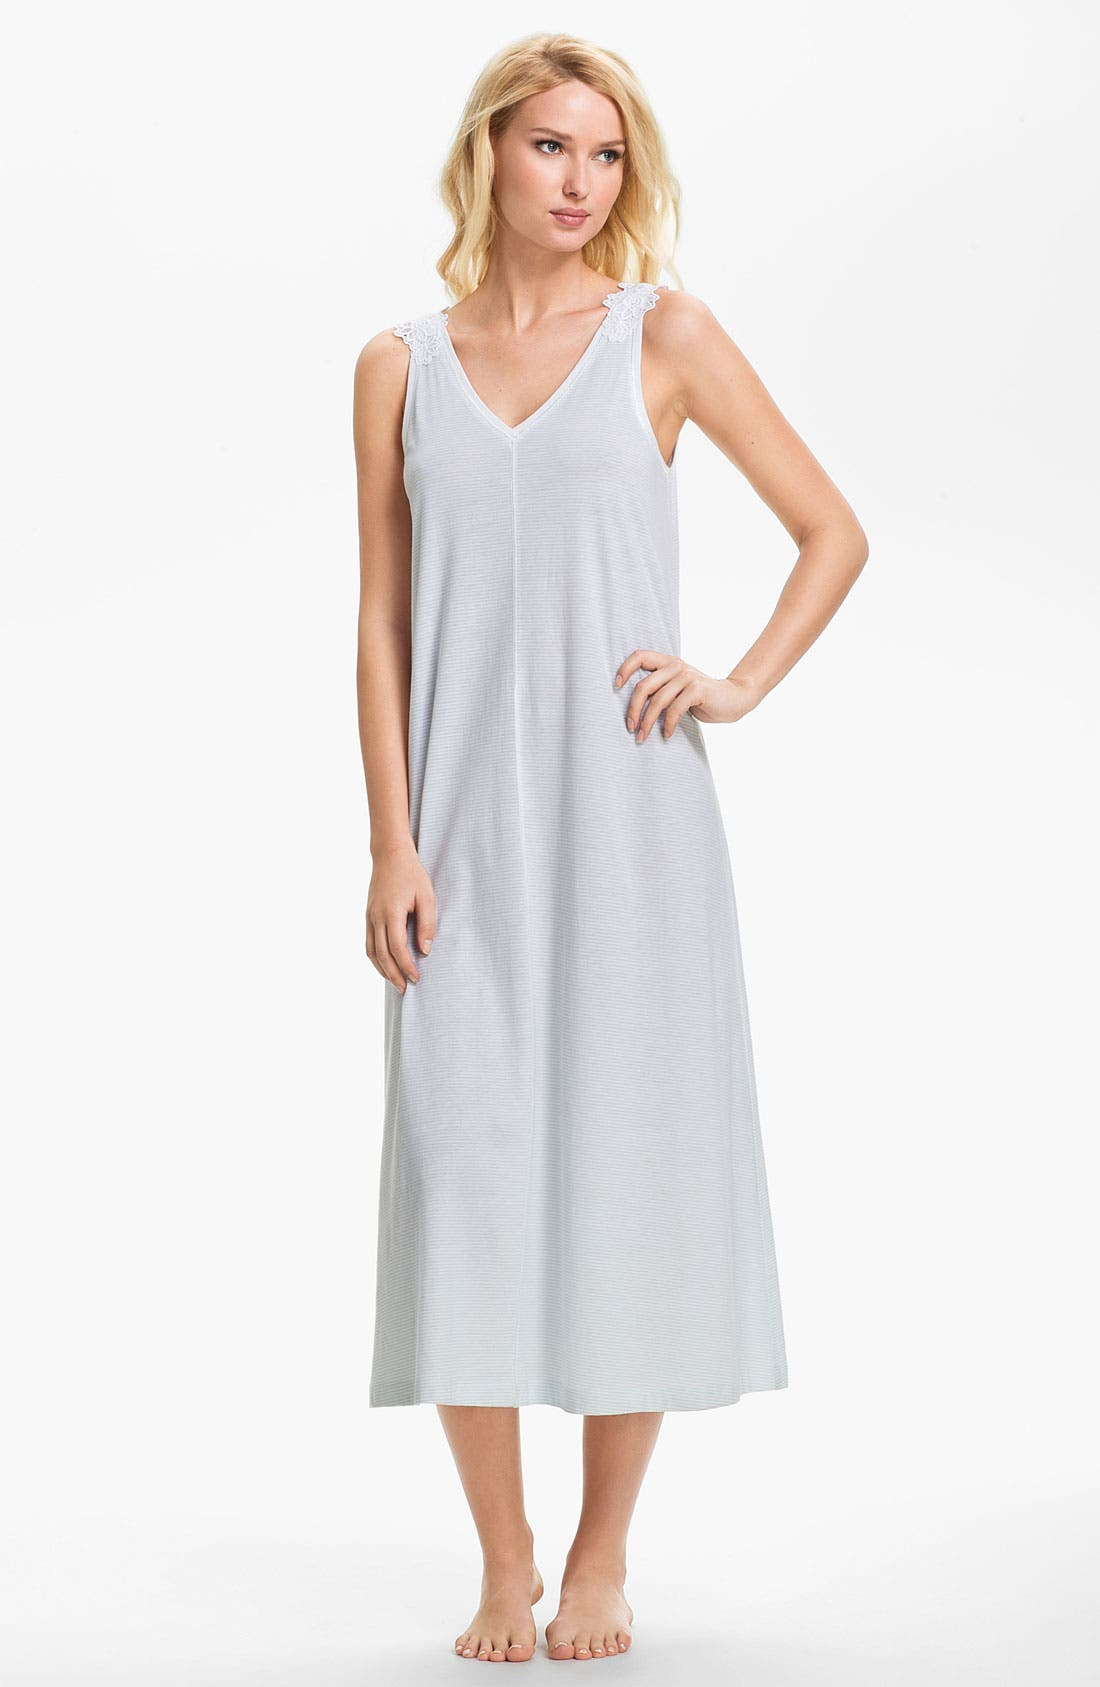 Alternate Image 1 Selected - Carole Hochman Designs Sleeveless Nightgown